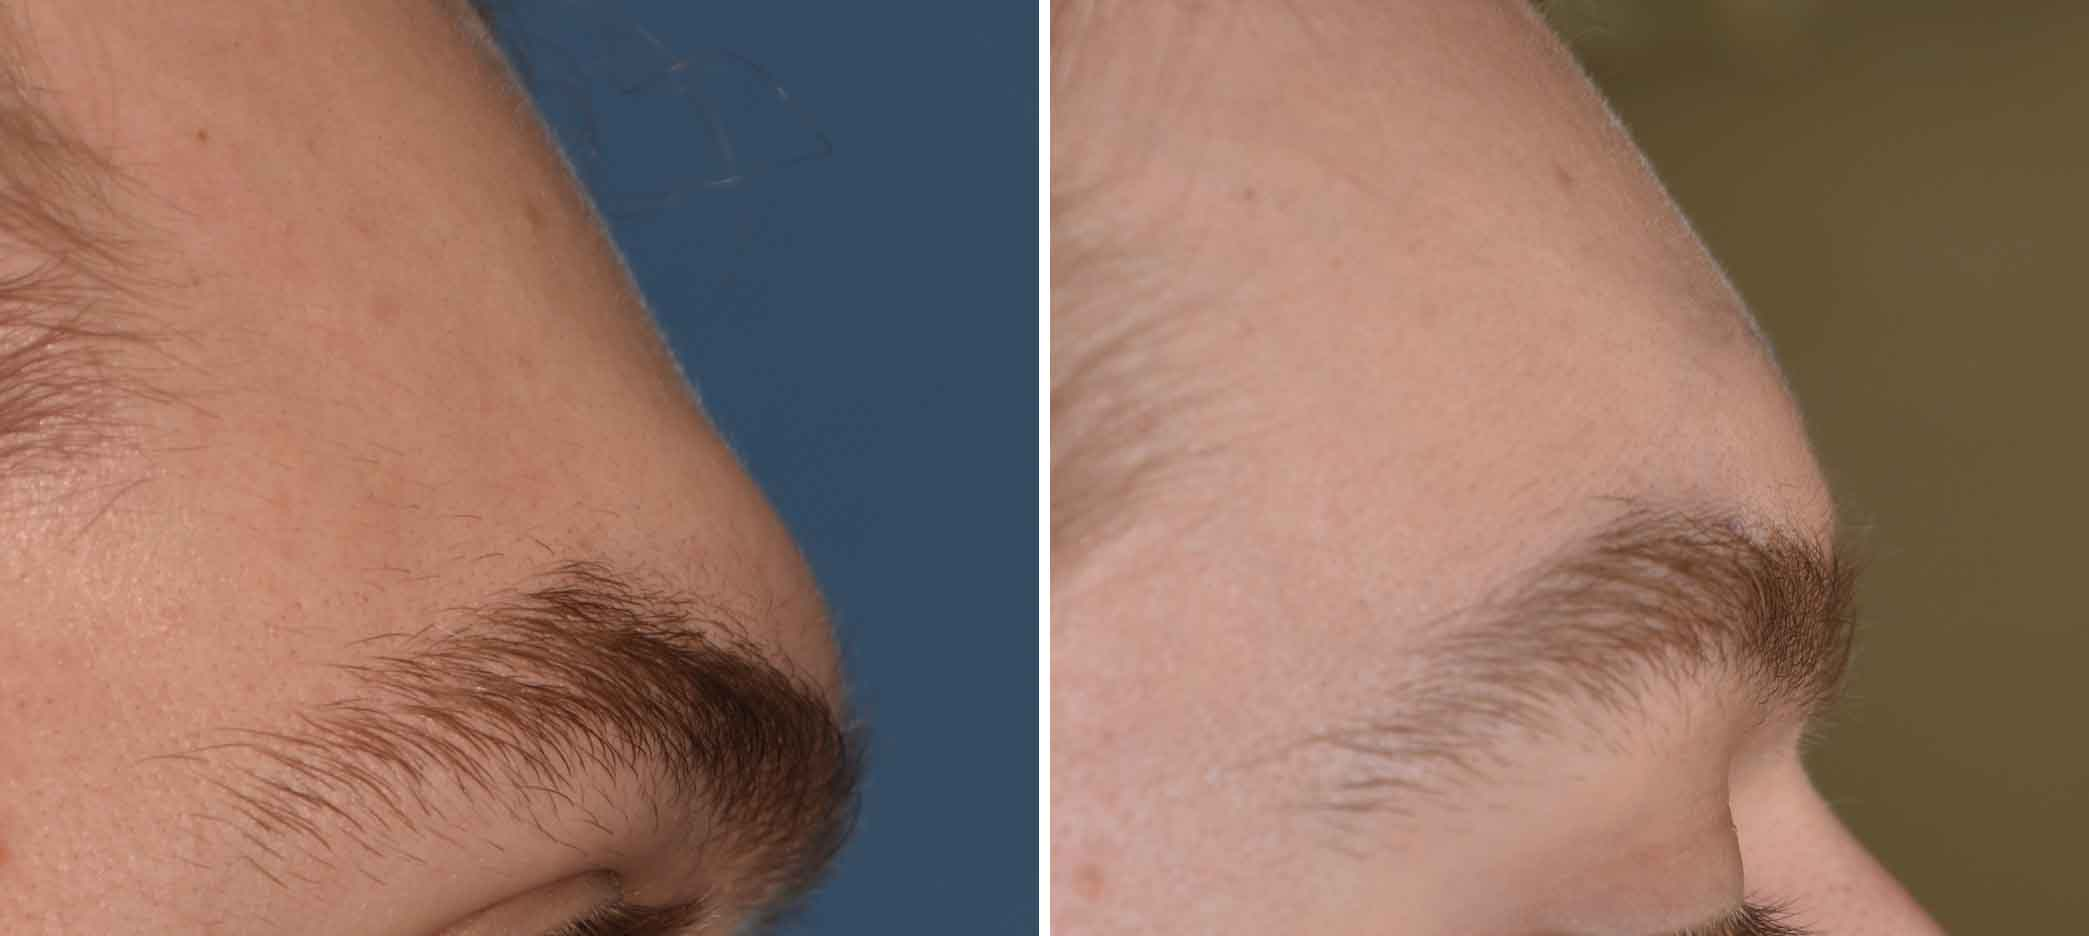 explore plastic surgery dr barry eppley plastic surgeon the immediate change in the forehead profile was evident but not over flattened